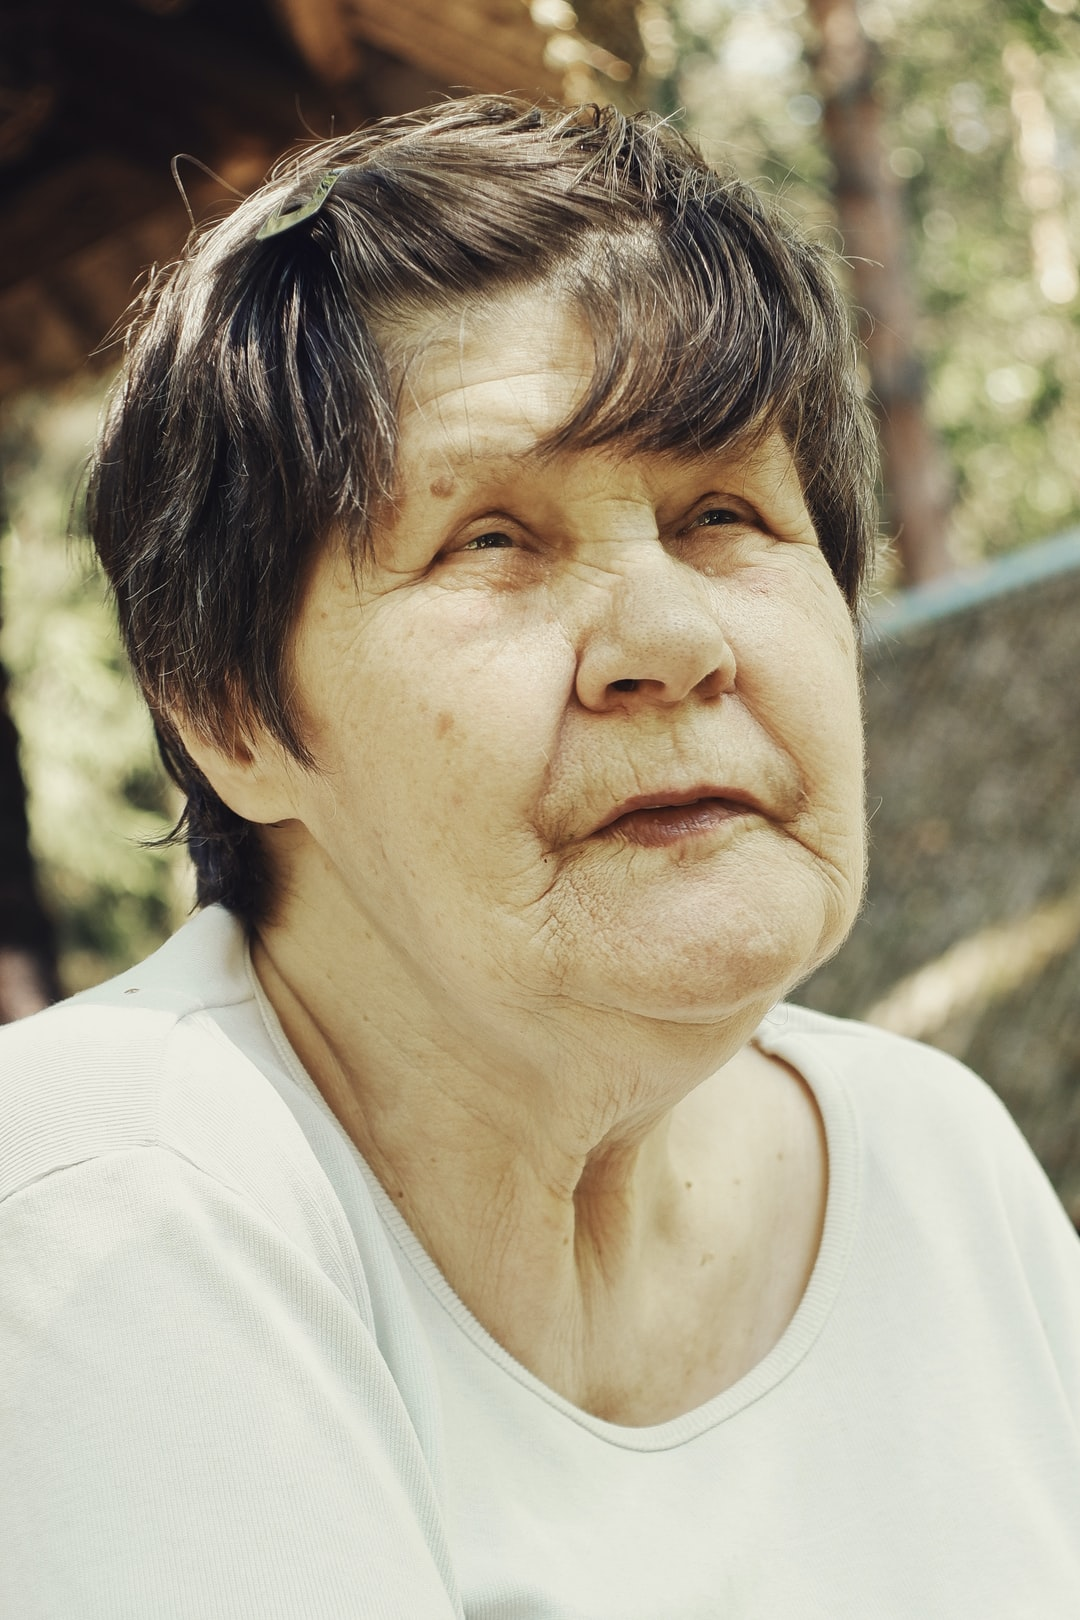 Portrait of an elderly pension age woman grandmother wearing a white shirt